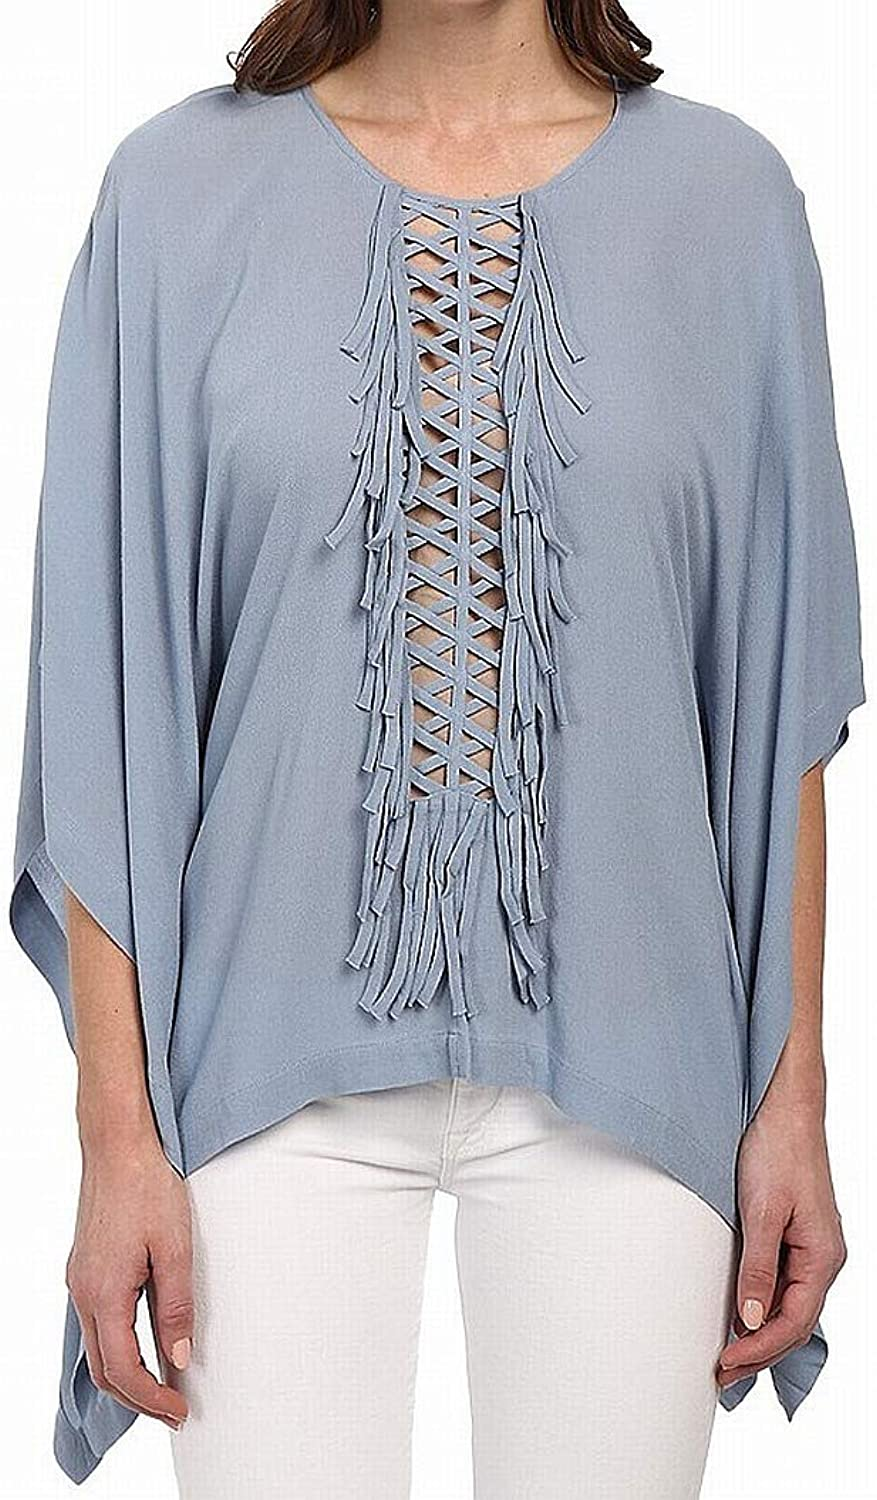 BCBGMAXAZRIA Women's Fringe Woven Top Shadow bluee Blouse SM (US 4)